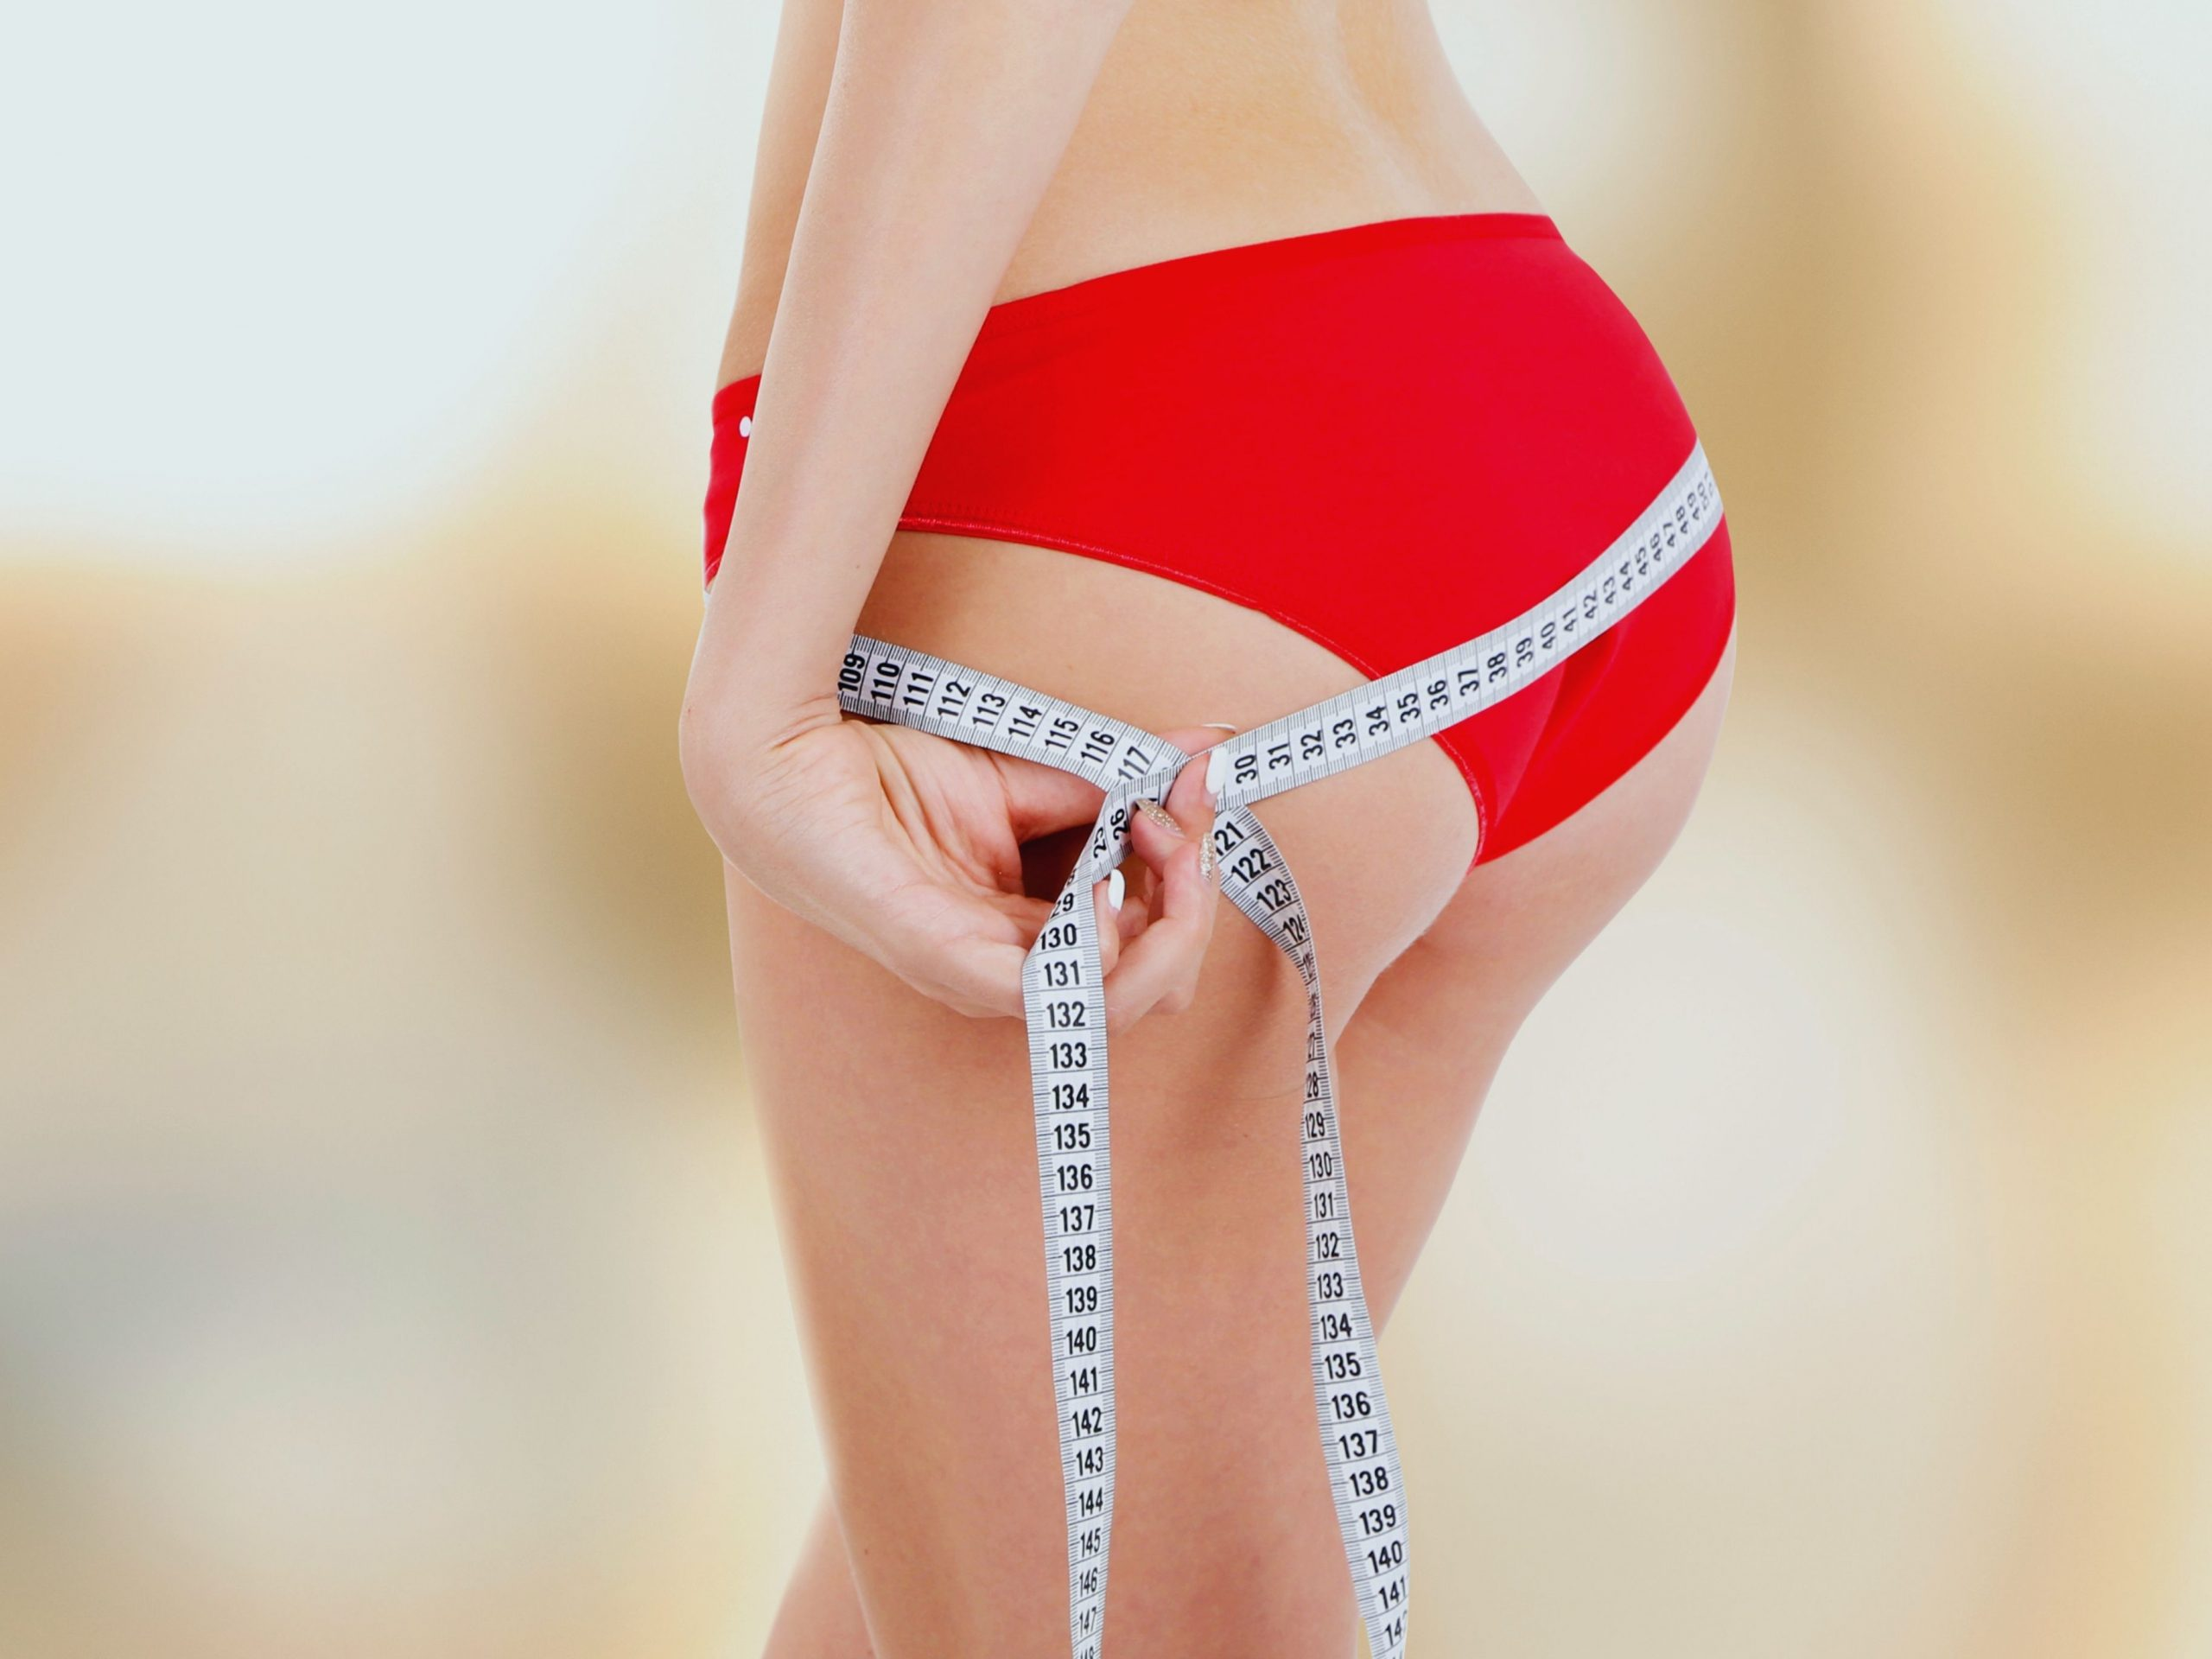 How to have a successful Brazilian Buttock Lift (BBL)